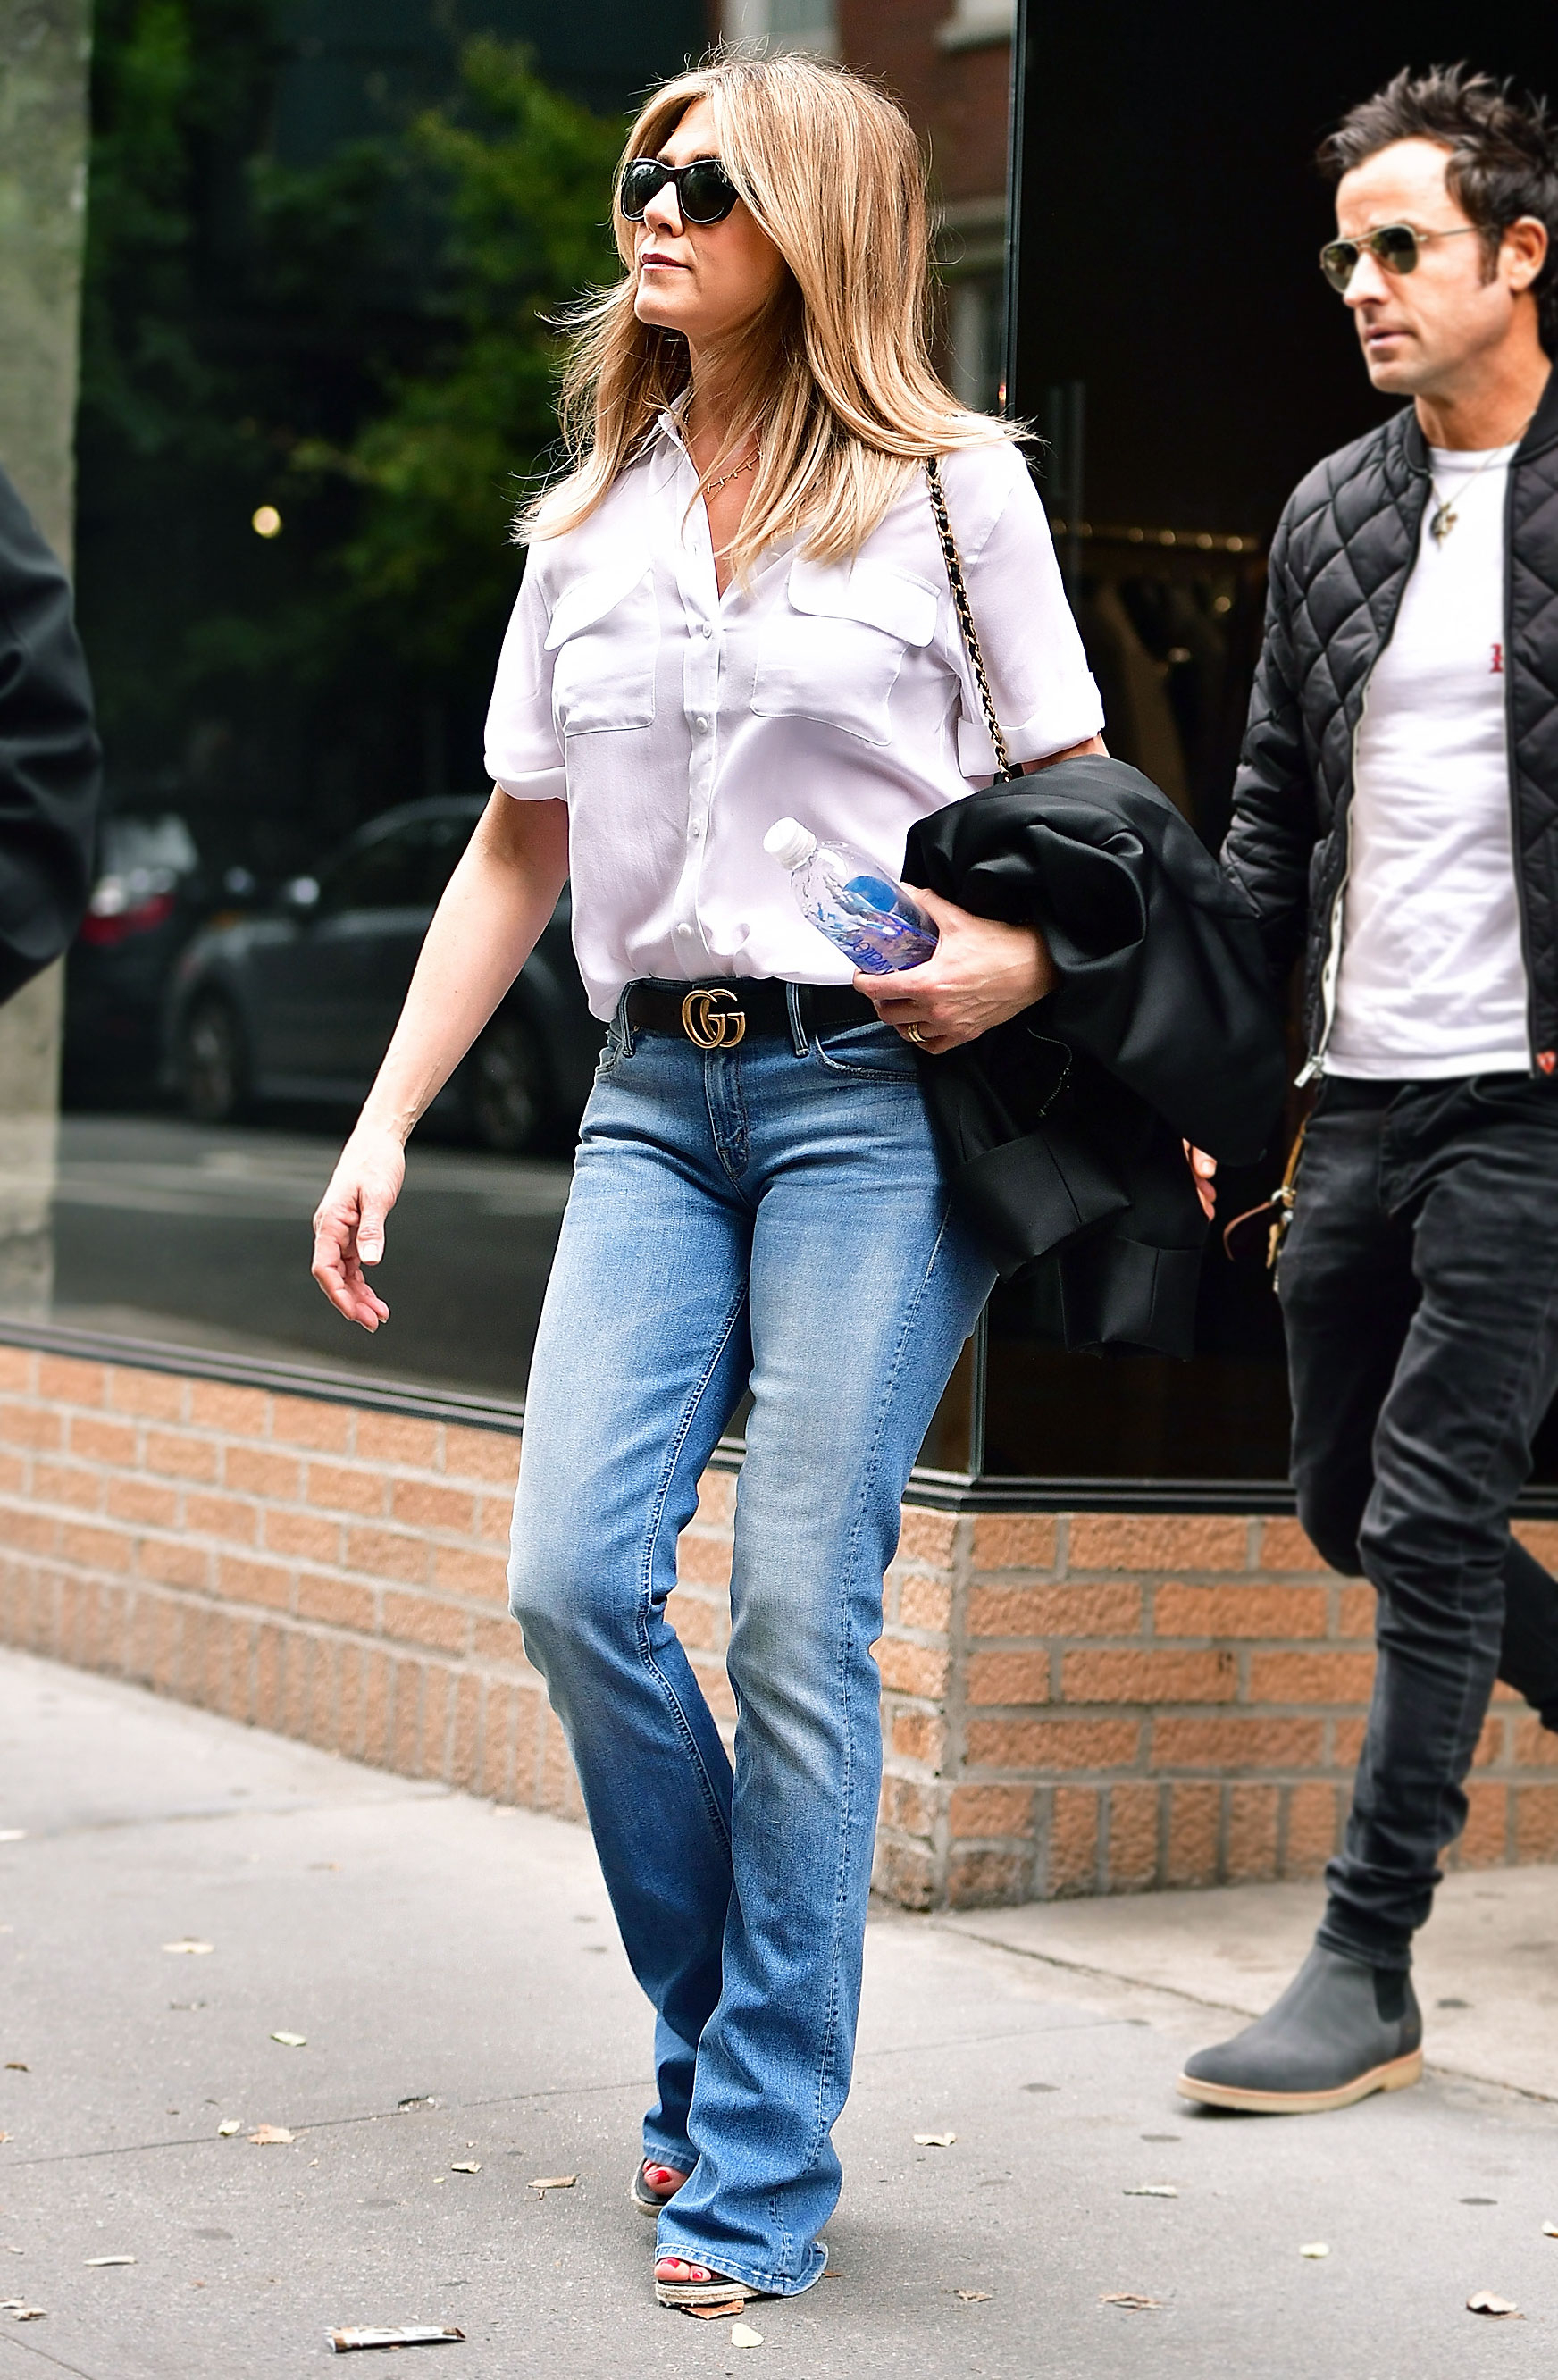 Kendall J And More Cinch Street Styles With Gucci Belts